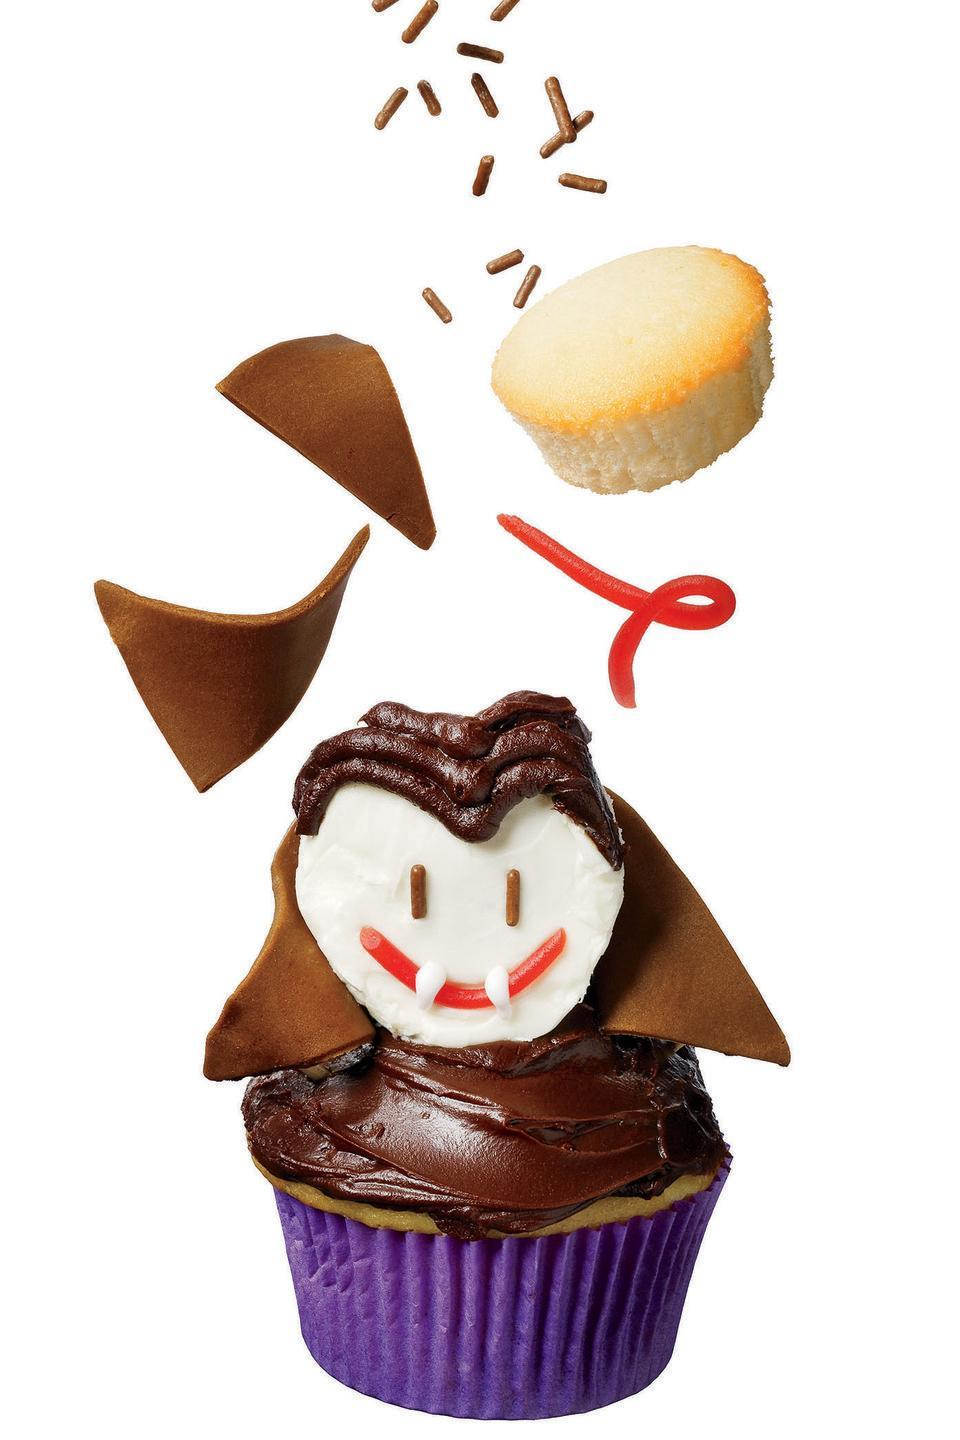 """<p>This recipe uses mini cupcakes for the Dracula face, licorice string for the mouth, and frosting for the rest of the features. </p><p><em><a href=""""https://www.womansday.com/food-recipes/food-drinks/recipes/a11432/fangtastic-dracula-cupcake-recipe-122728/"""" rel=""""nofollow noopener"""" target=""""_blank"""" data-ylk=""""slk:Get the Fang-tastic Dracula Cupcake recipe."""" class=""""link rapid-noclick-resp"""">Get the Fang-tastic Dracula Cupcake recipe.</a></em></p>"""